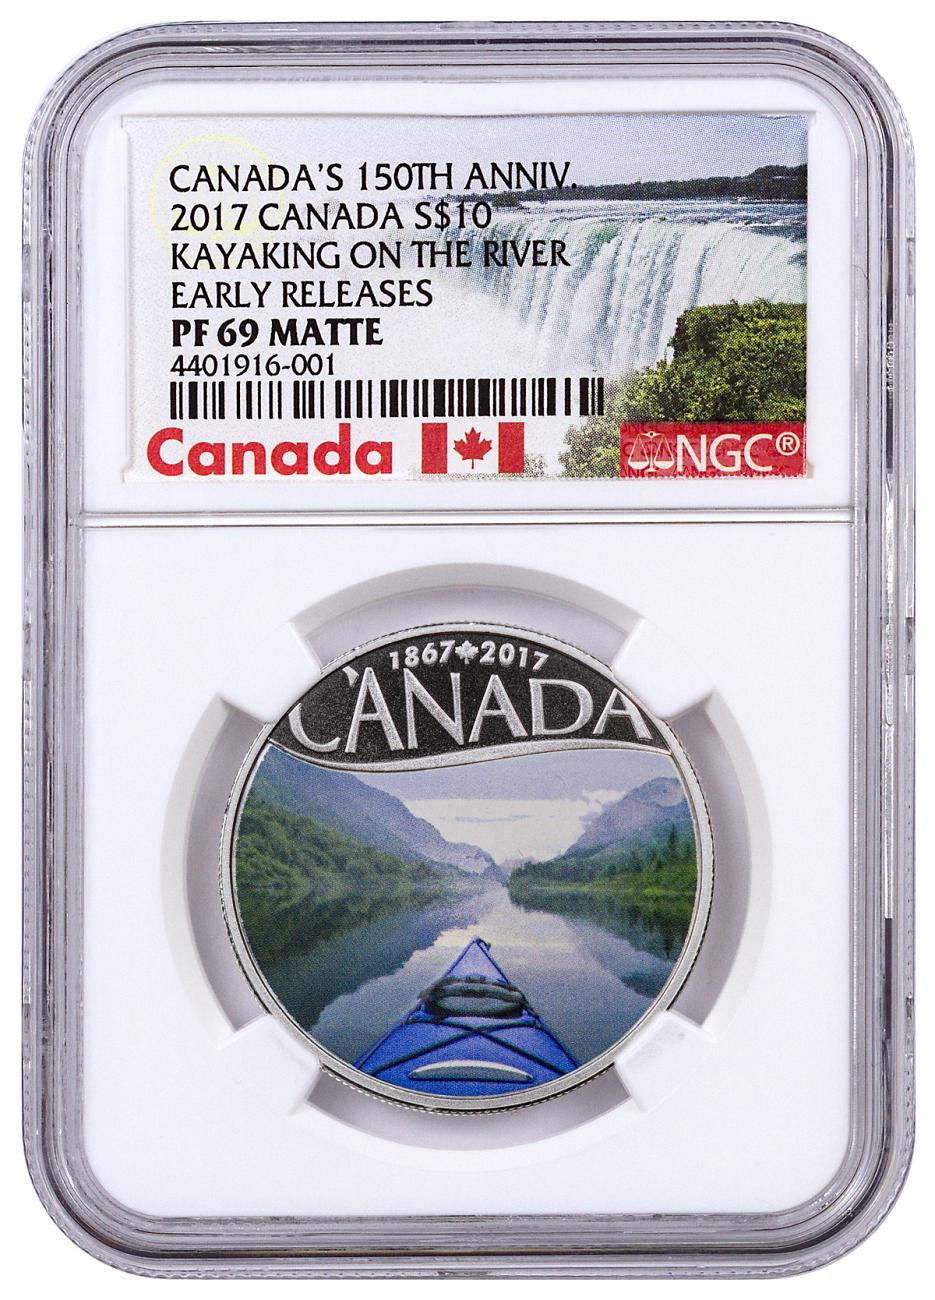 2017 Canada $10 1/2 oz. Colorized Proof Silver Celebrating Canada's 150th - Kayaking on the River - NGC PF69 Early Releases (Exclusive Canada Label)